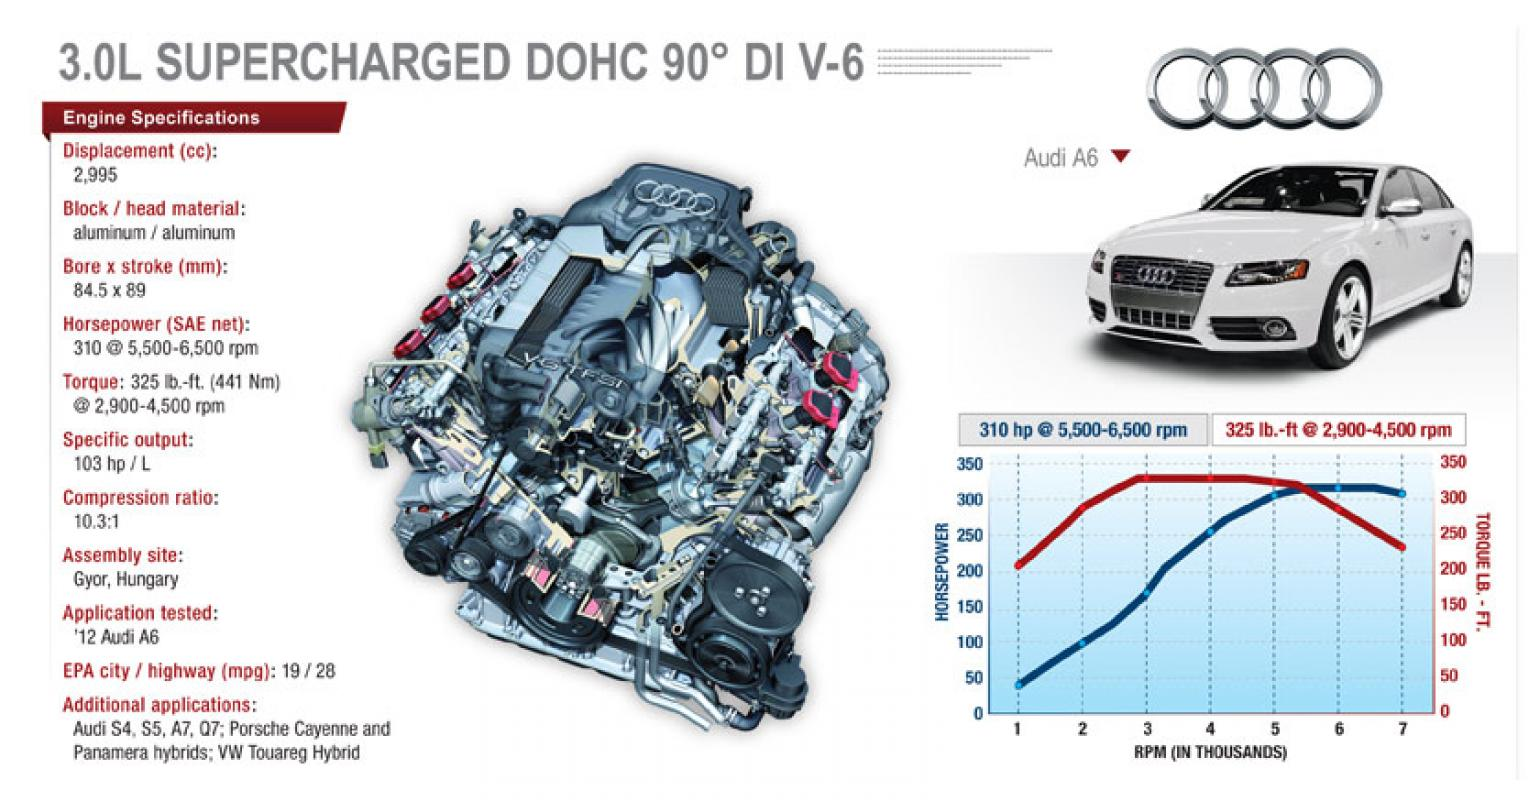 Supercharged Audi V-6 Excels in Power, Efficiency